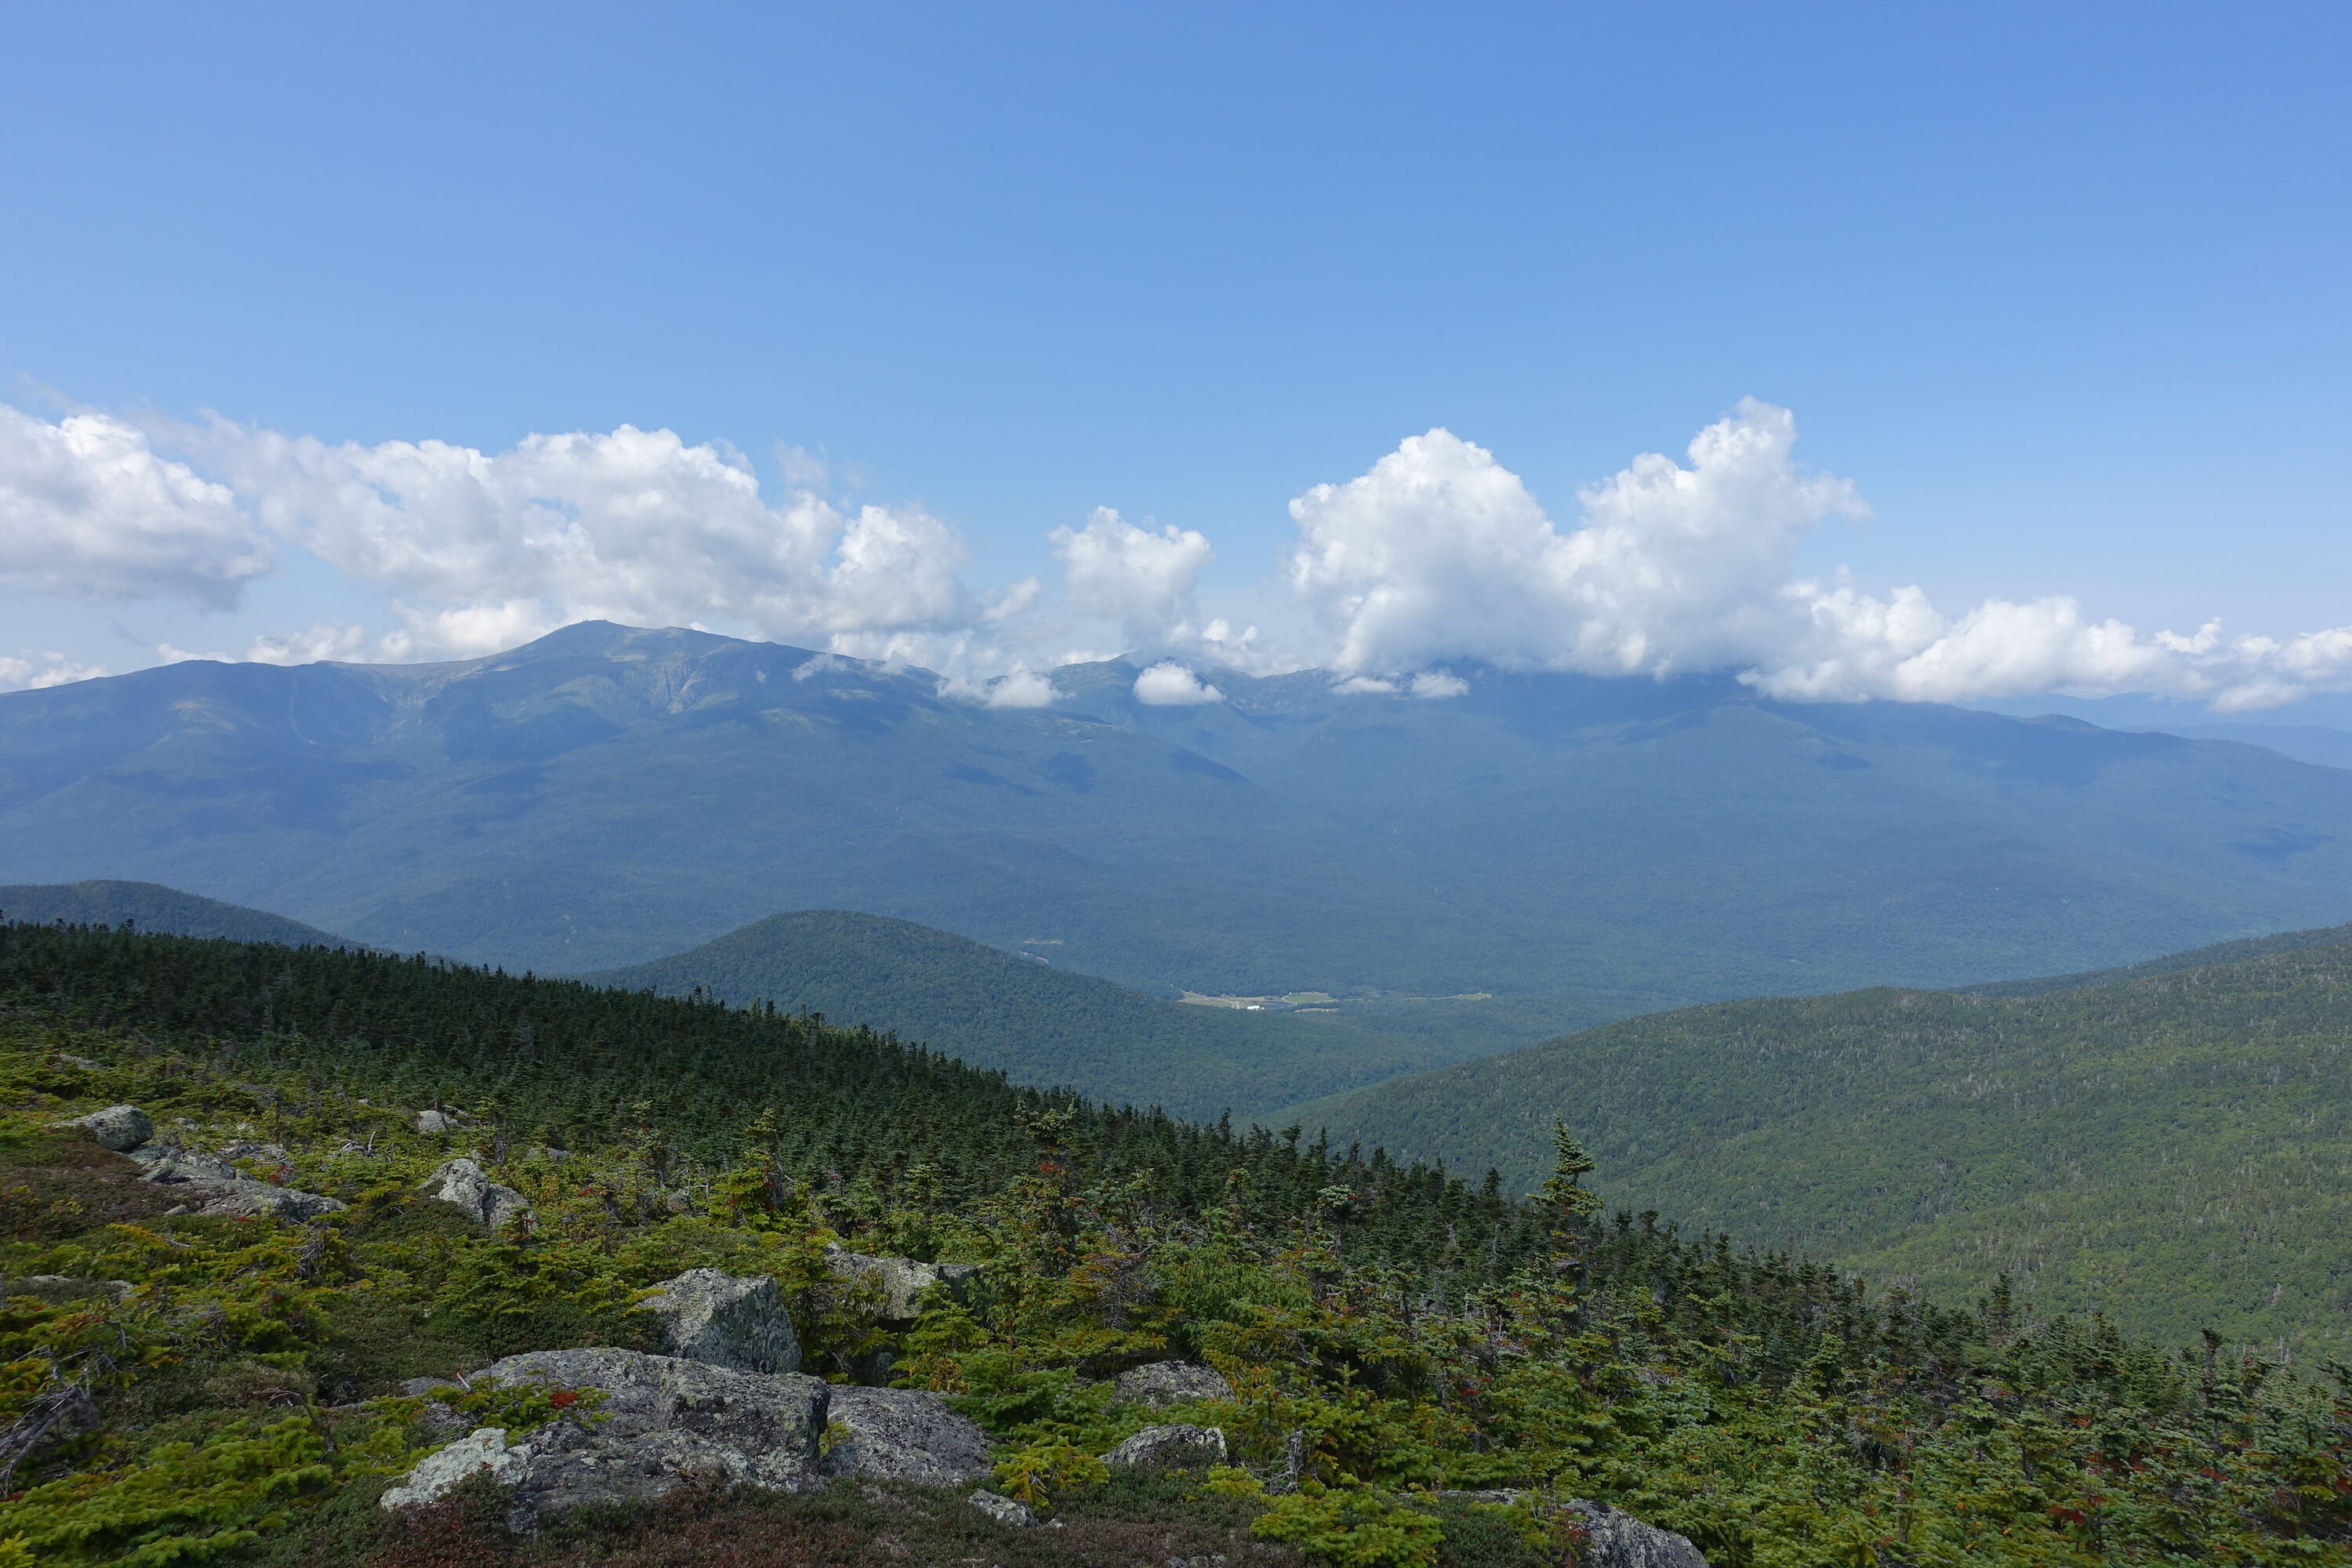 View of Mount Washington and the Northern Presidentials from Mount Hight